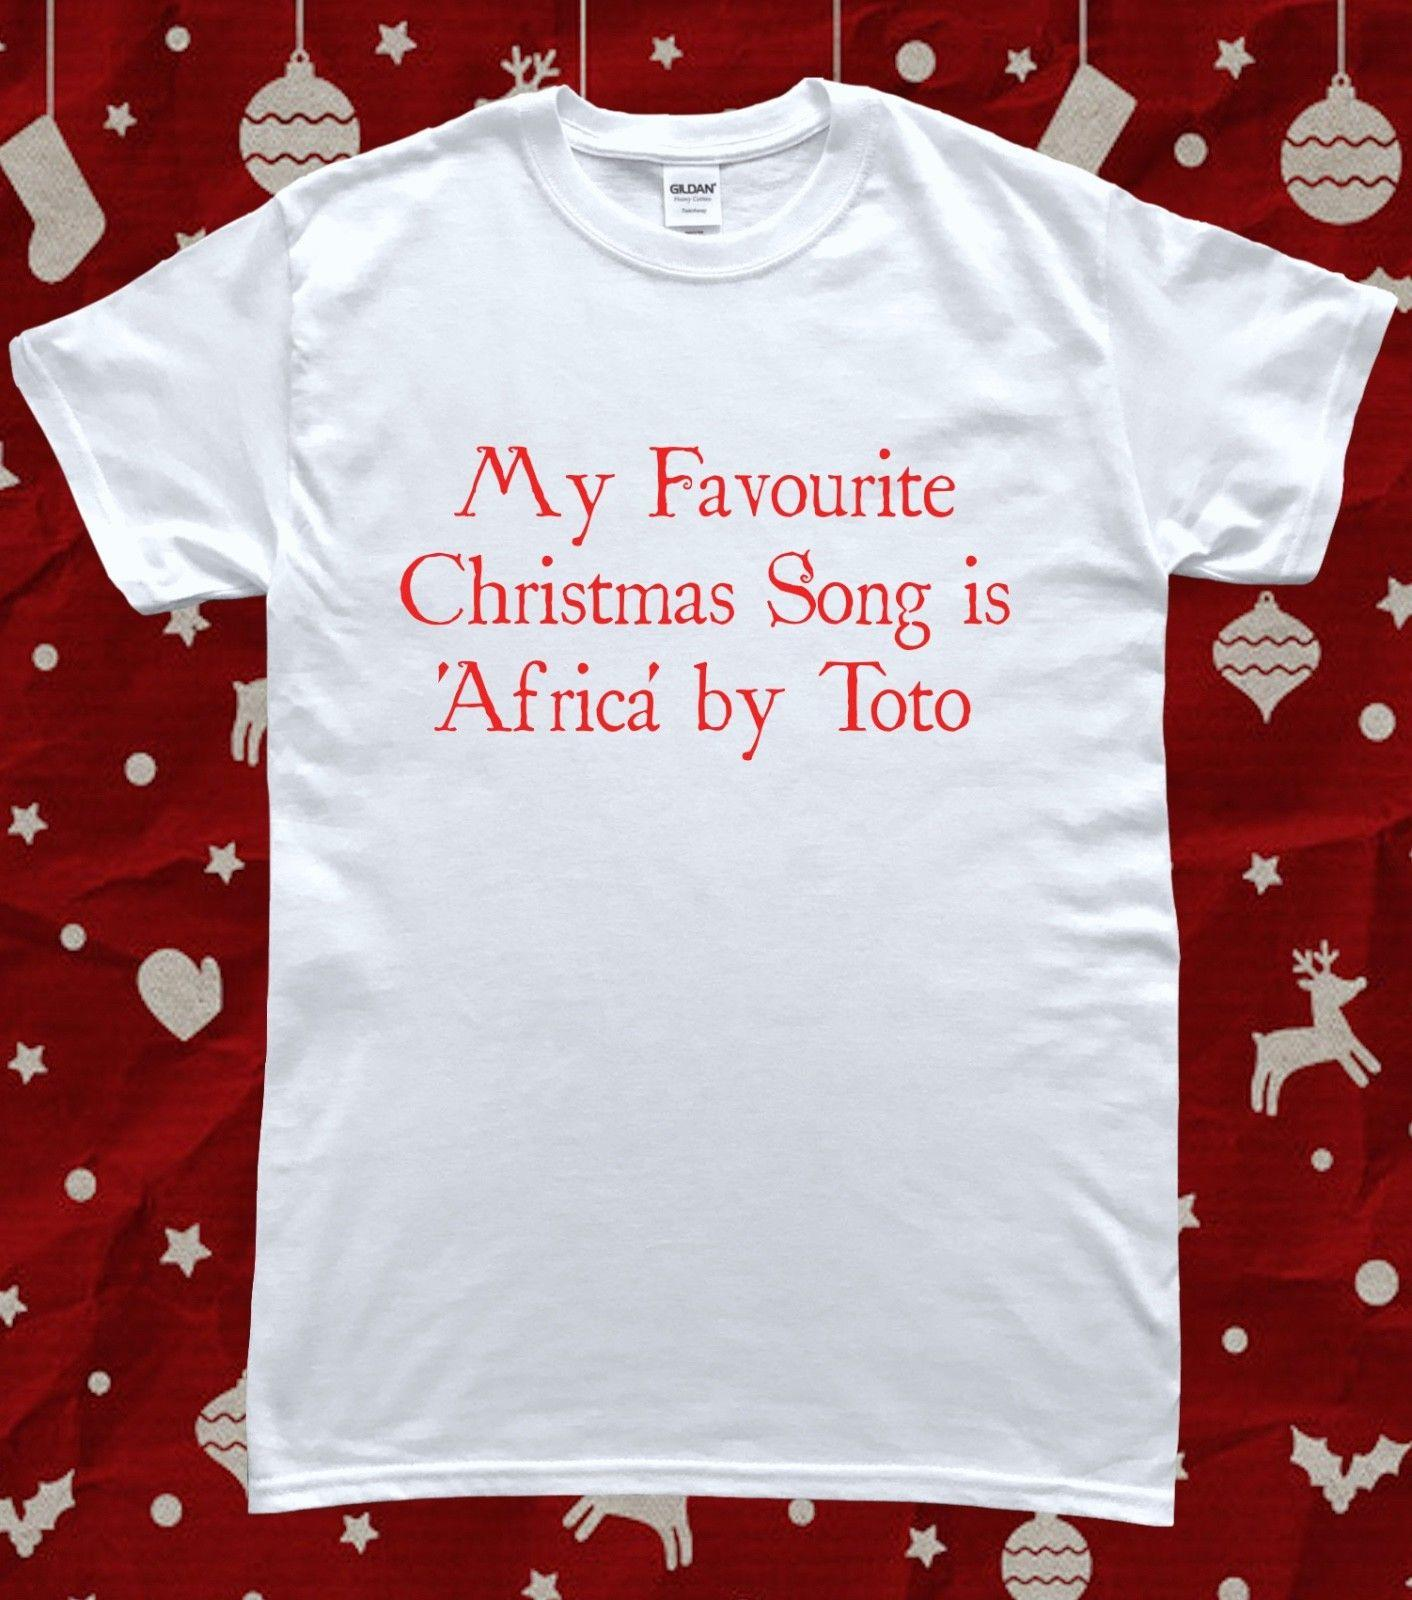 77f79794d8c8b My Favourite Christmas Song Africa Toto Meme T Shirt Funny Unisex Casual  Cool T Shirt Online T Shirt 24 Hours From Cheznobody